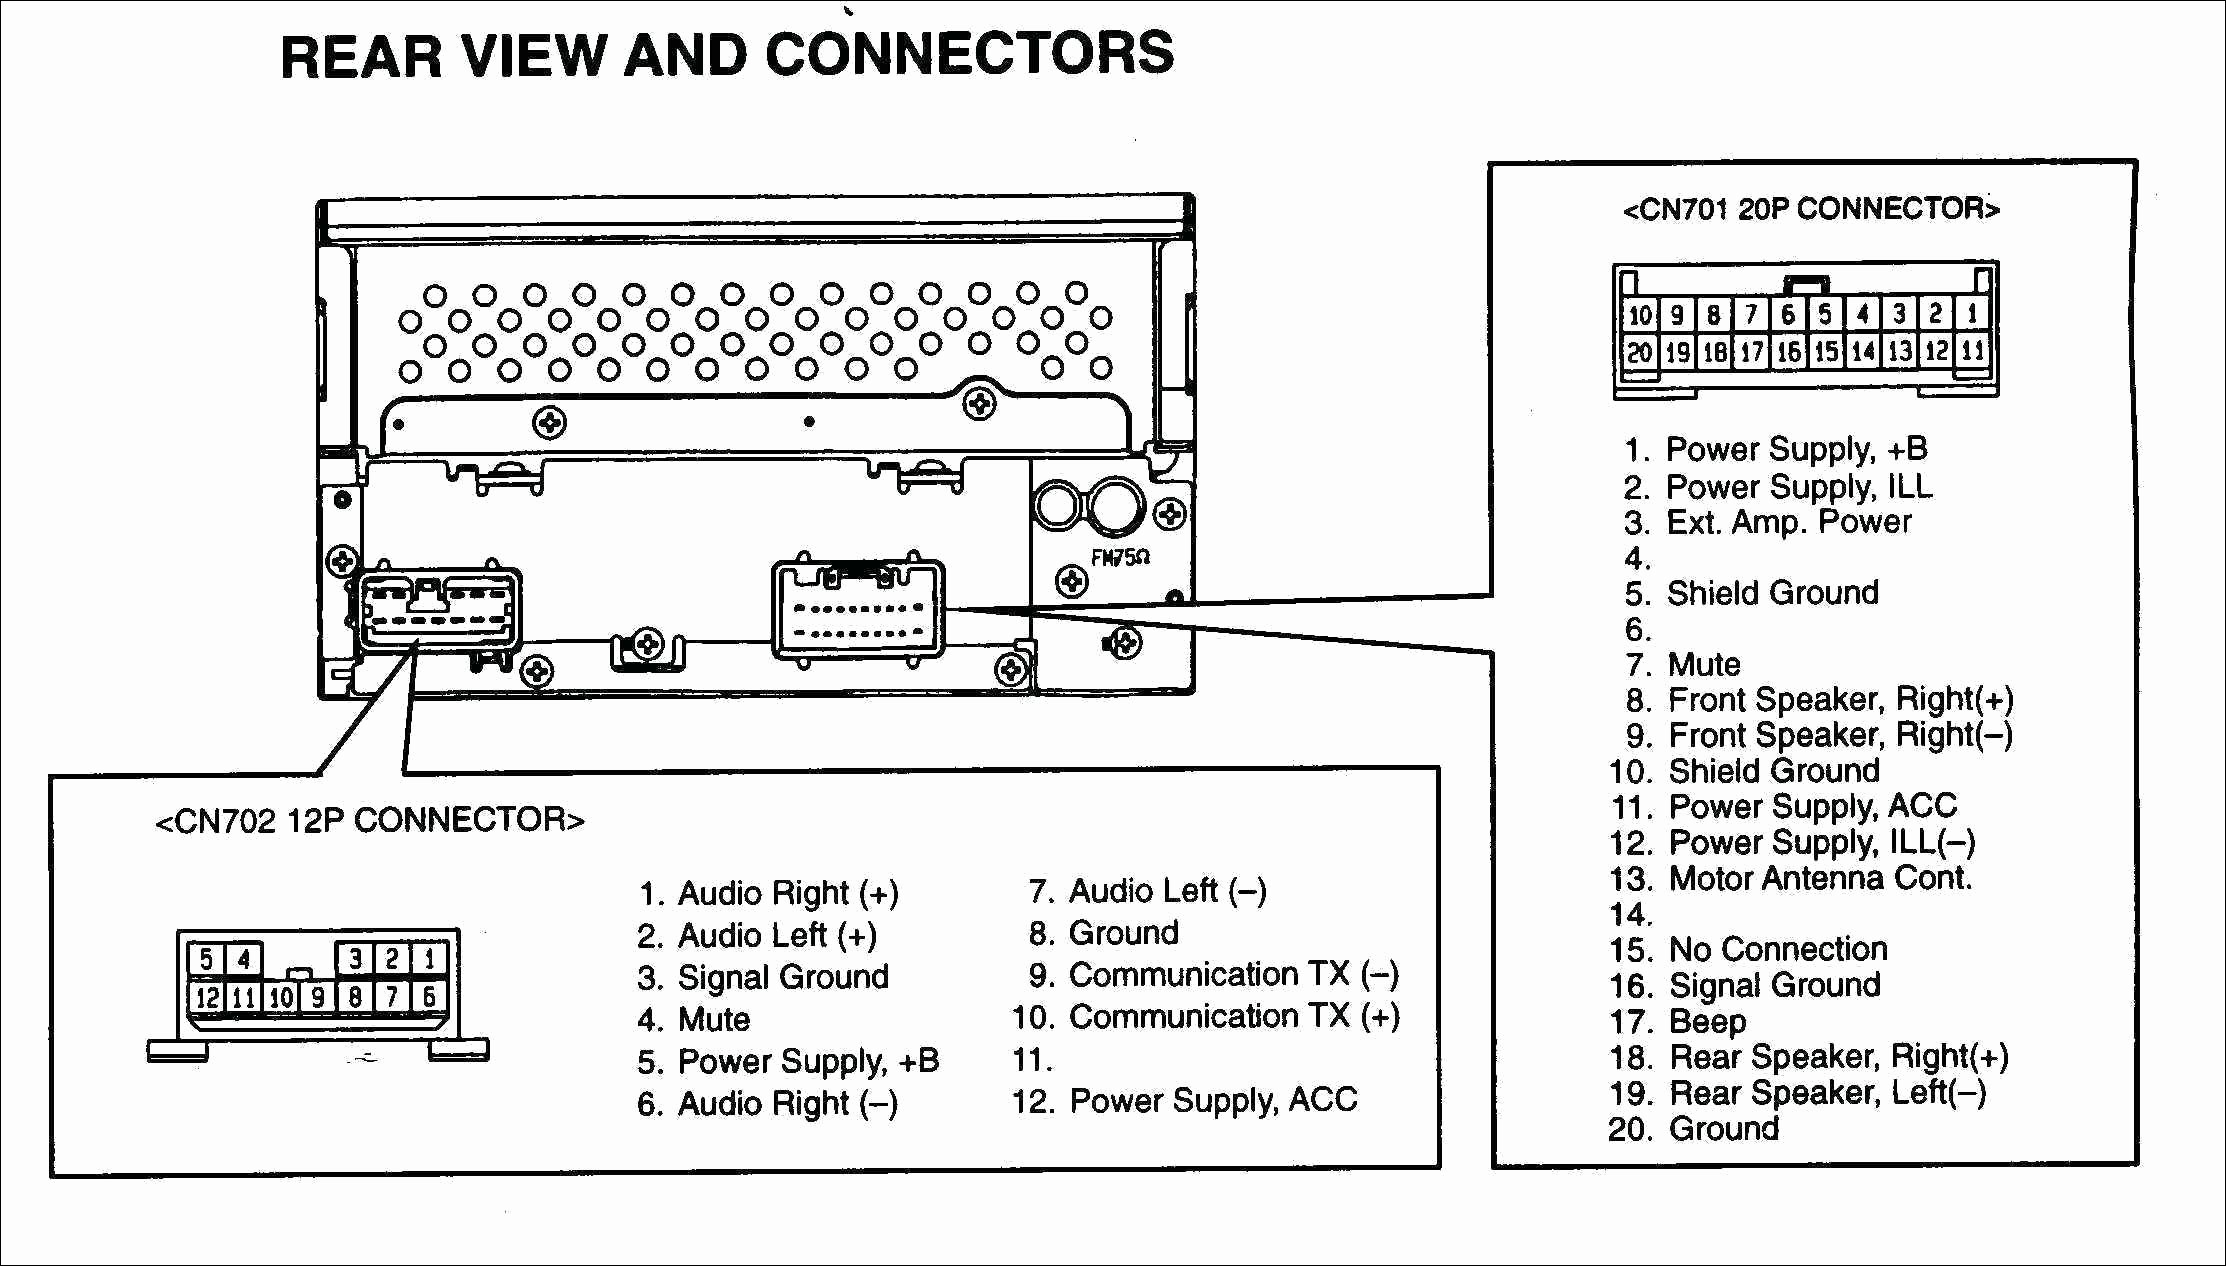 Modern Deh 1500 Wiring Diagram Mold Electrical and Wiring Diagram Pioneer